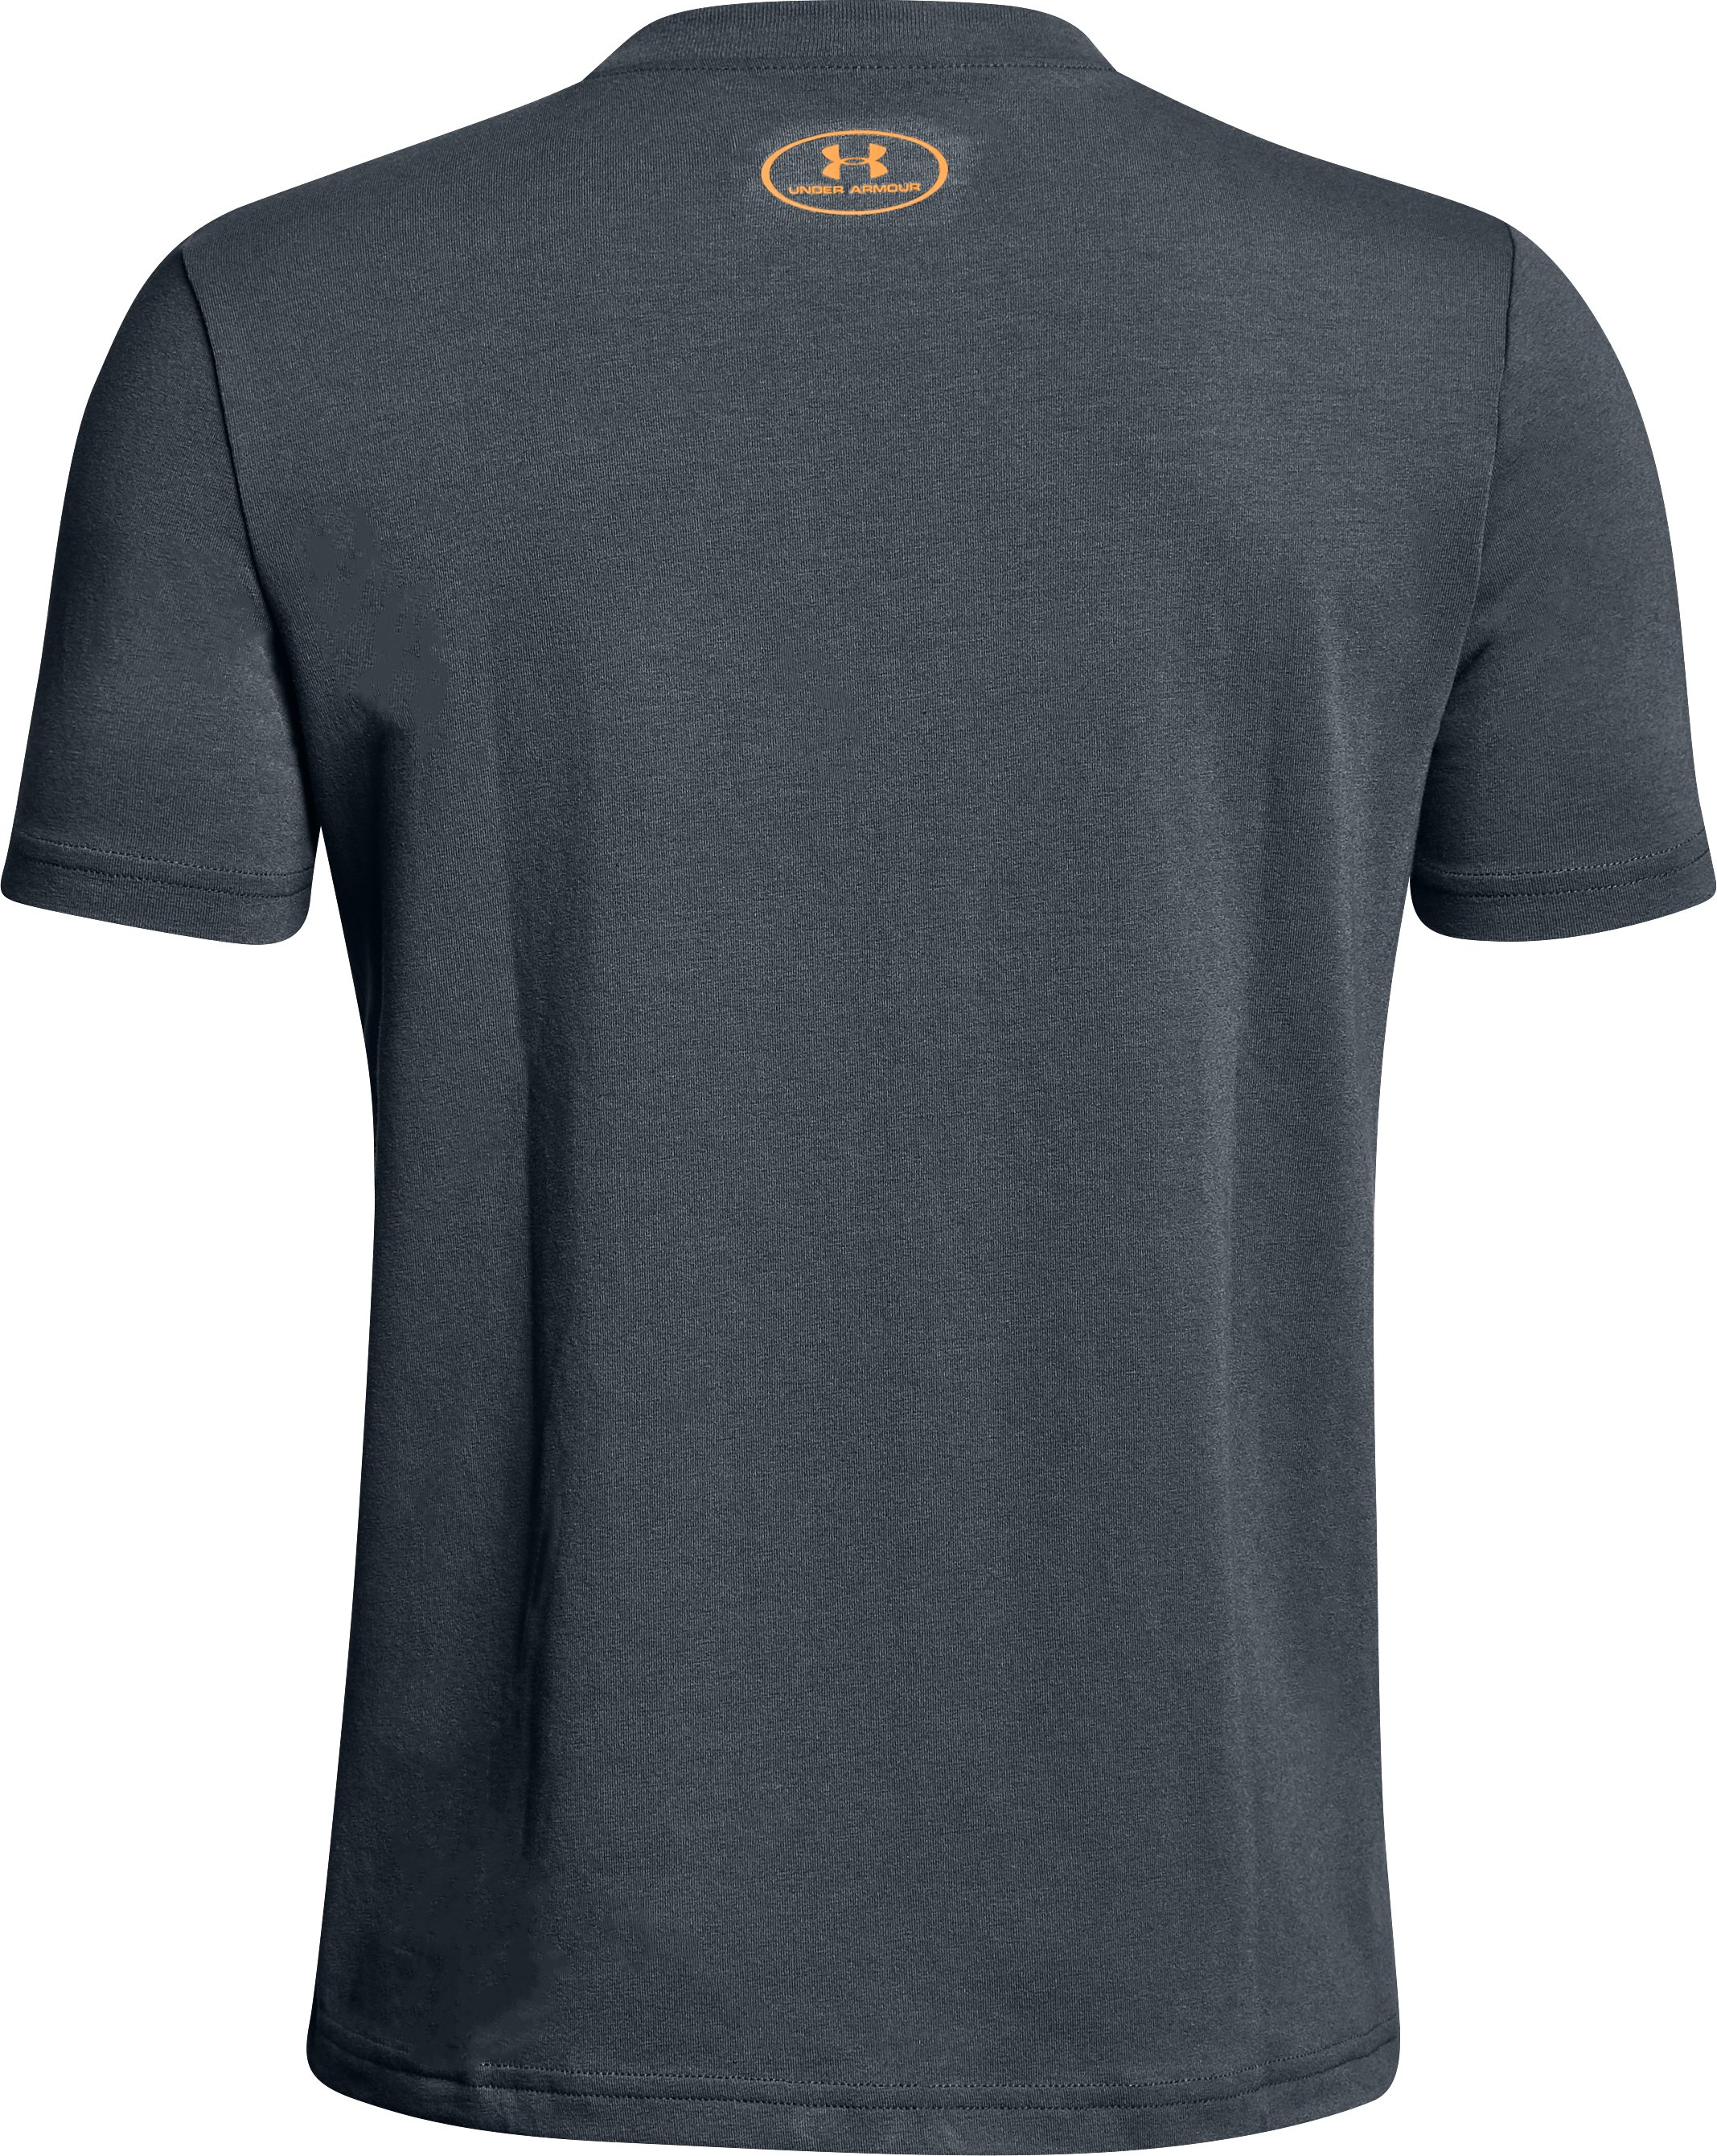 Boys' UA Never Back Down T-Shirt, STEALTH GRAY, undefined